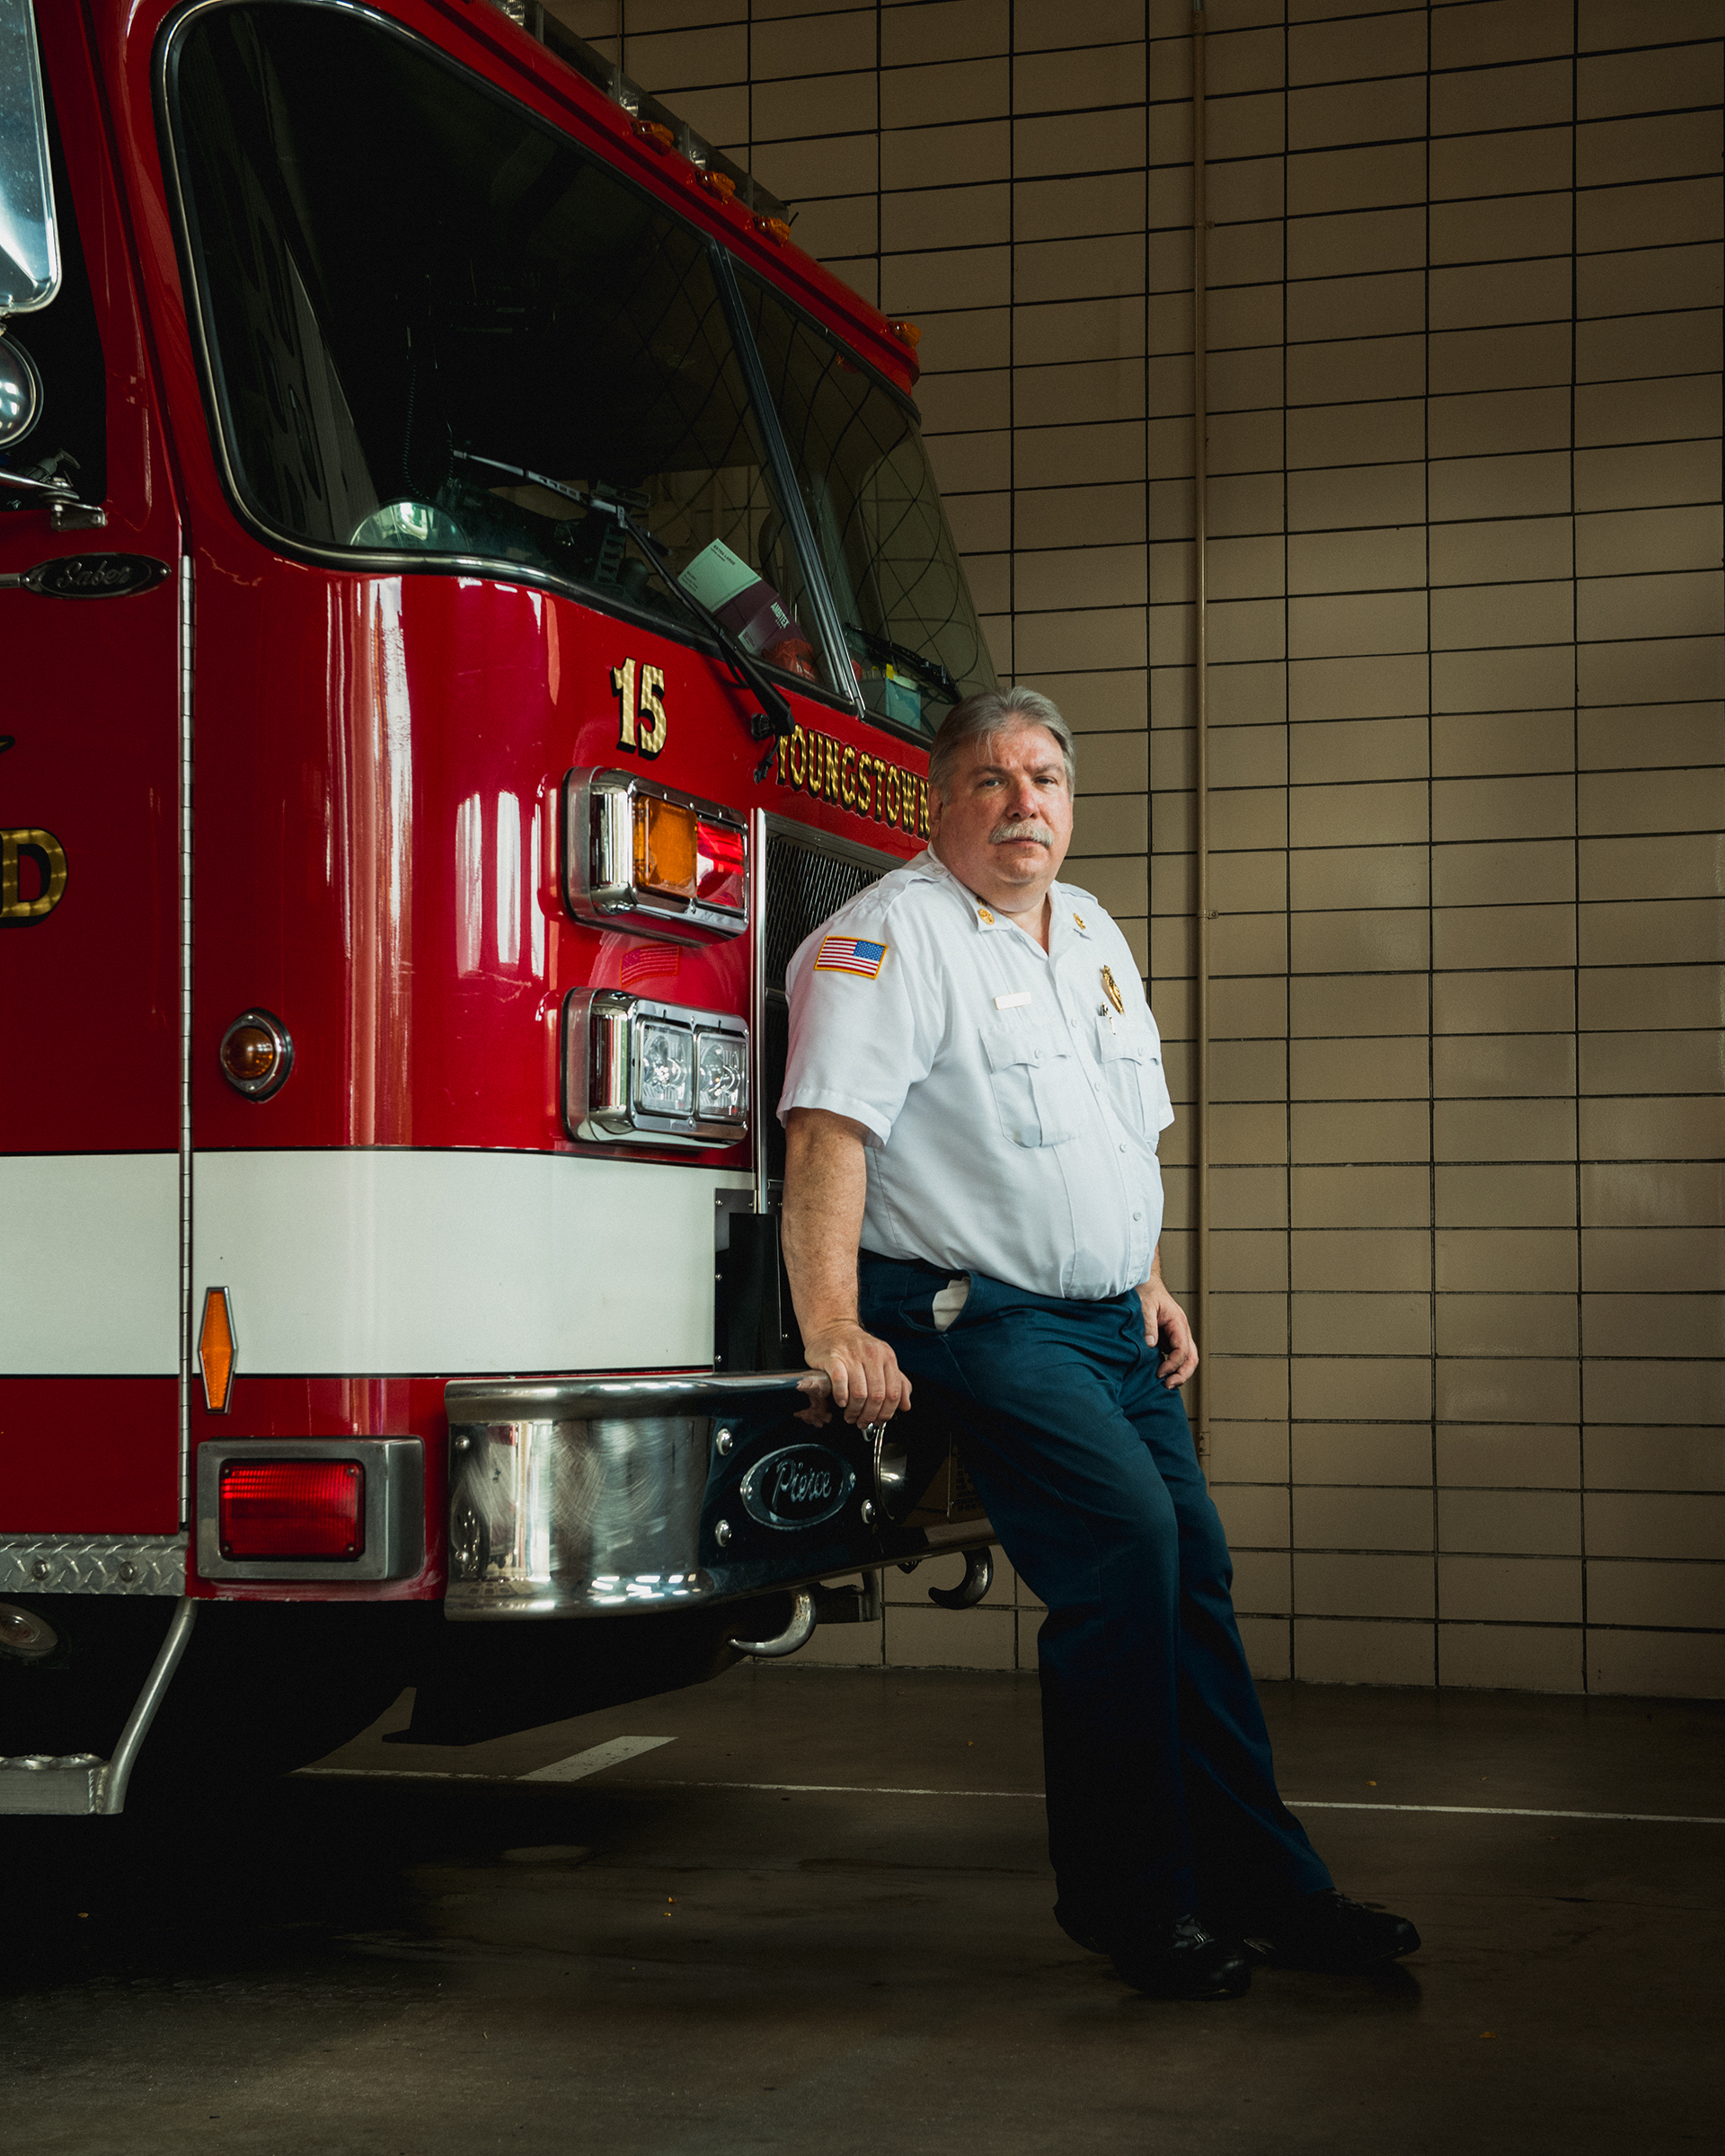 October 3, 2019: A portrait of Fire Chief Sil Caggiano at the Youngstown, OH, Fire Department. George Etheredge for Rolling Stone